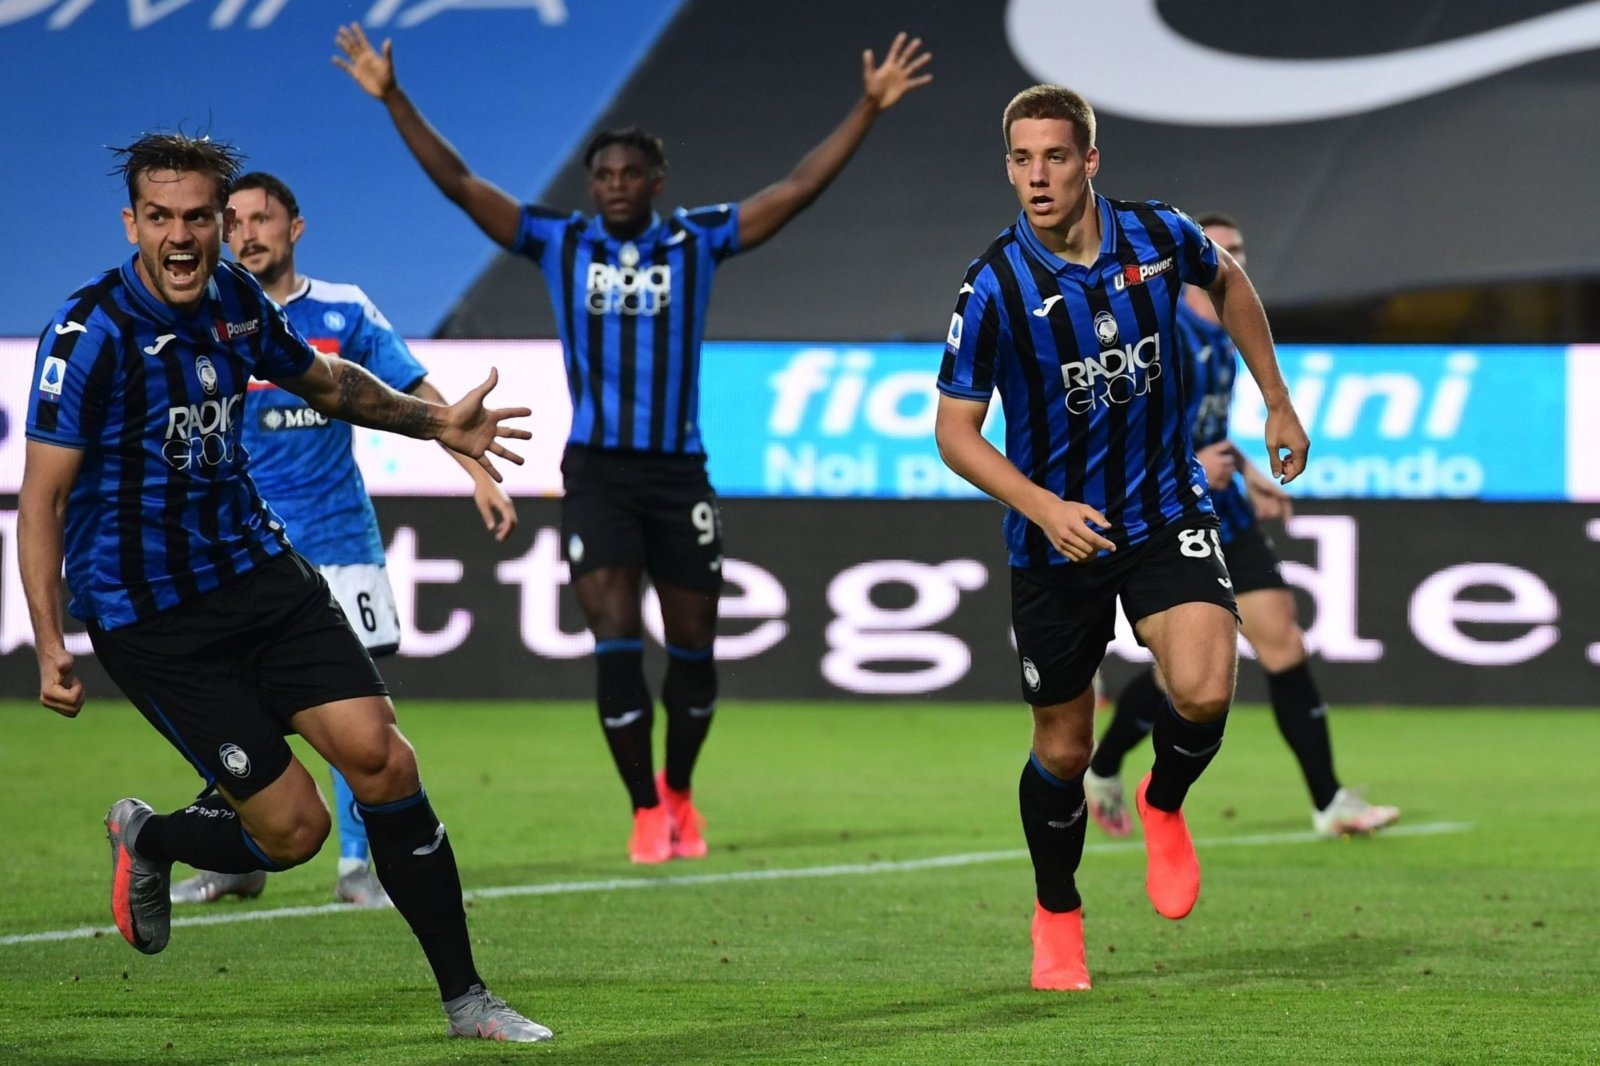 Atalanta manages first Serie A win over Juve in 20 years